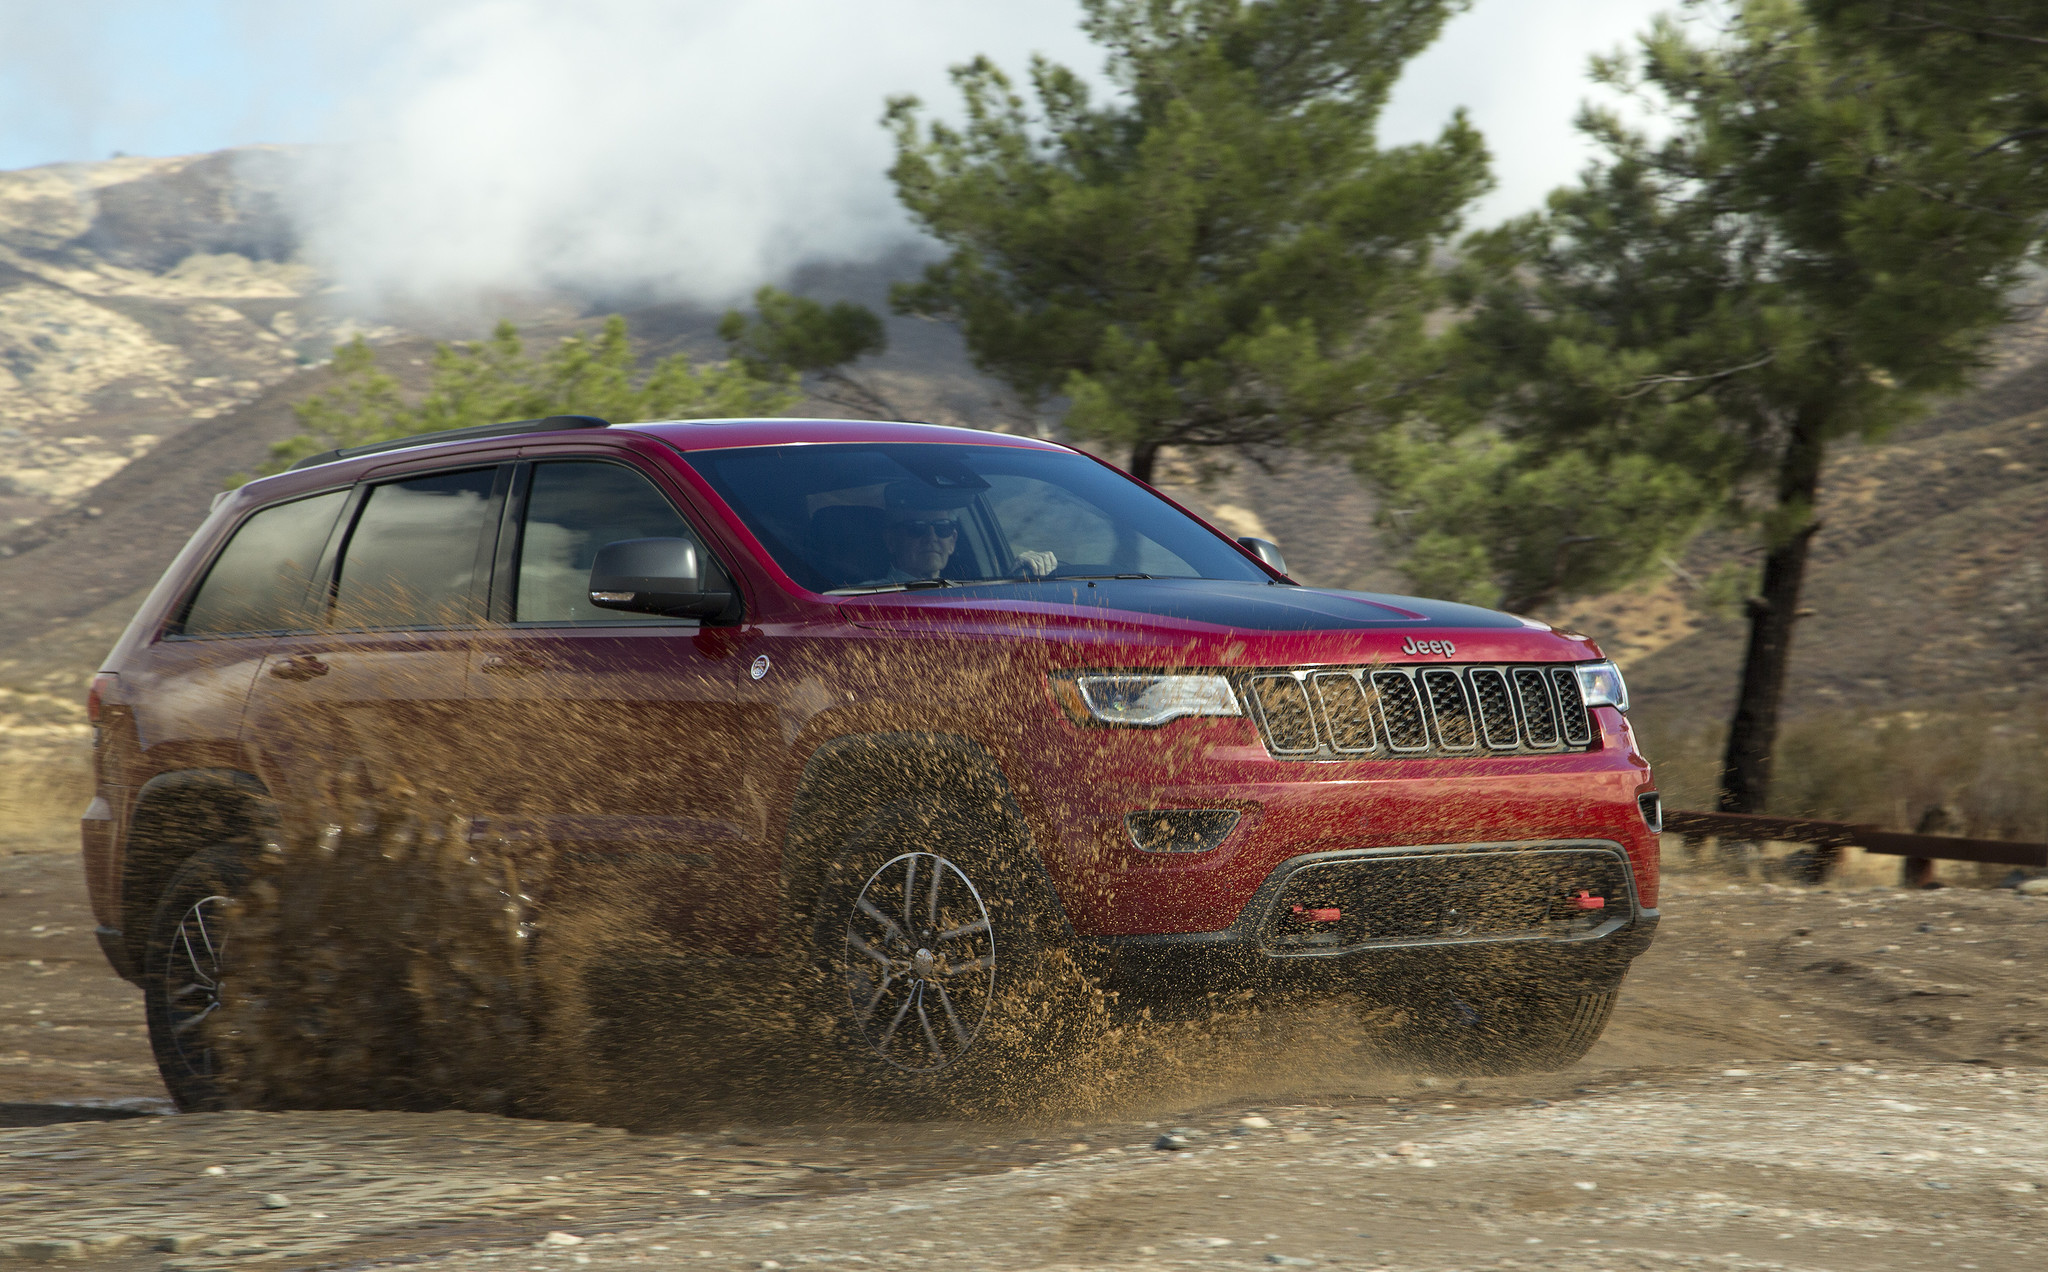 Puddle jumper: 2017 Jeep Grand Cherokee Trailhawk